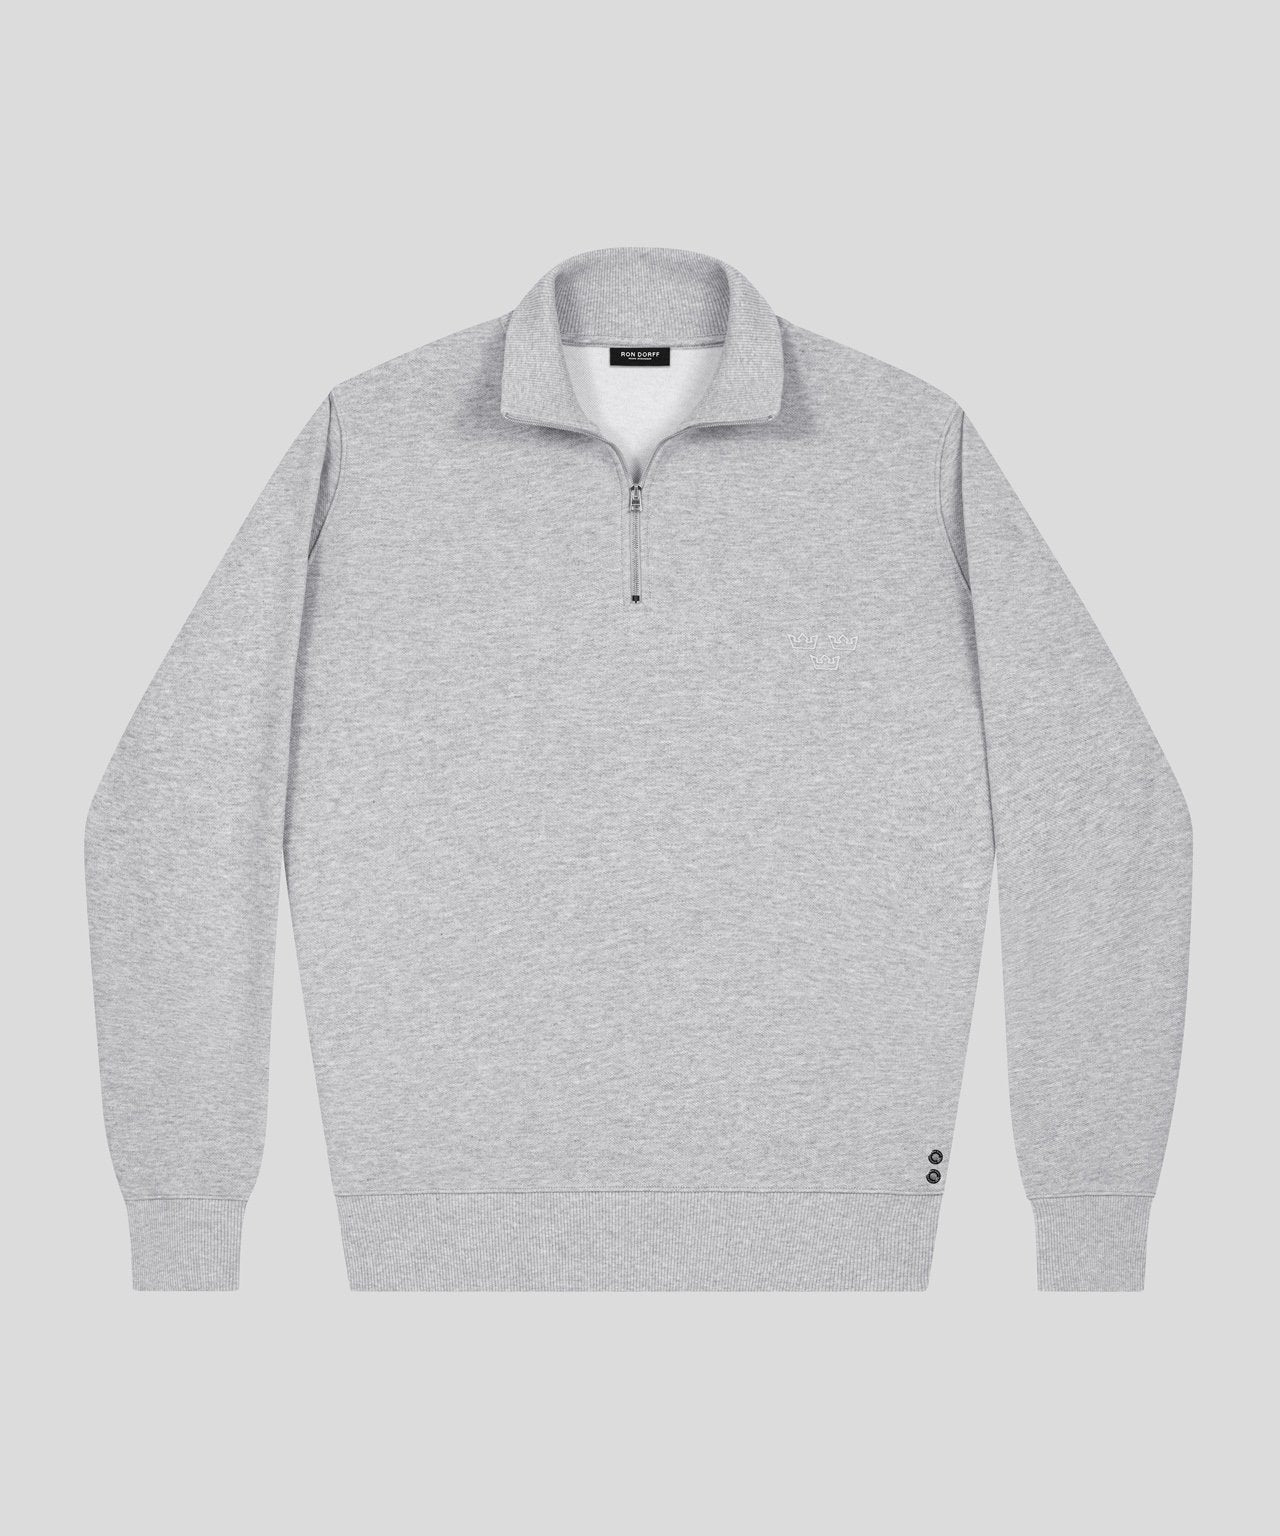 Polo Sweatshirt - grey melange